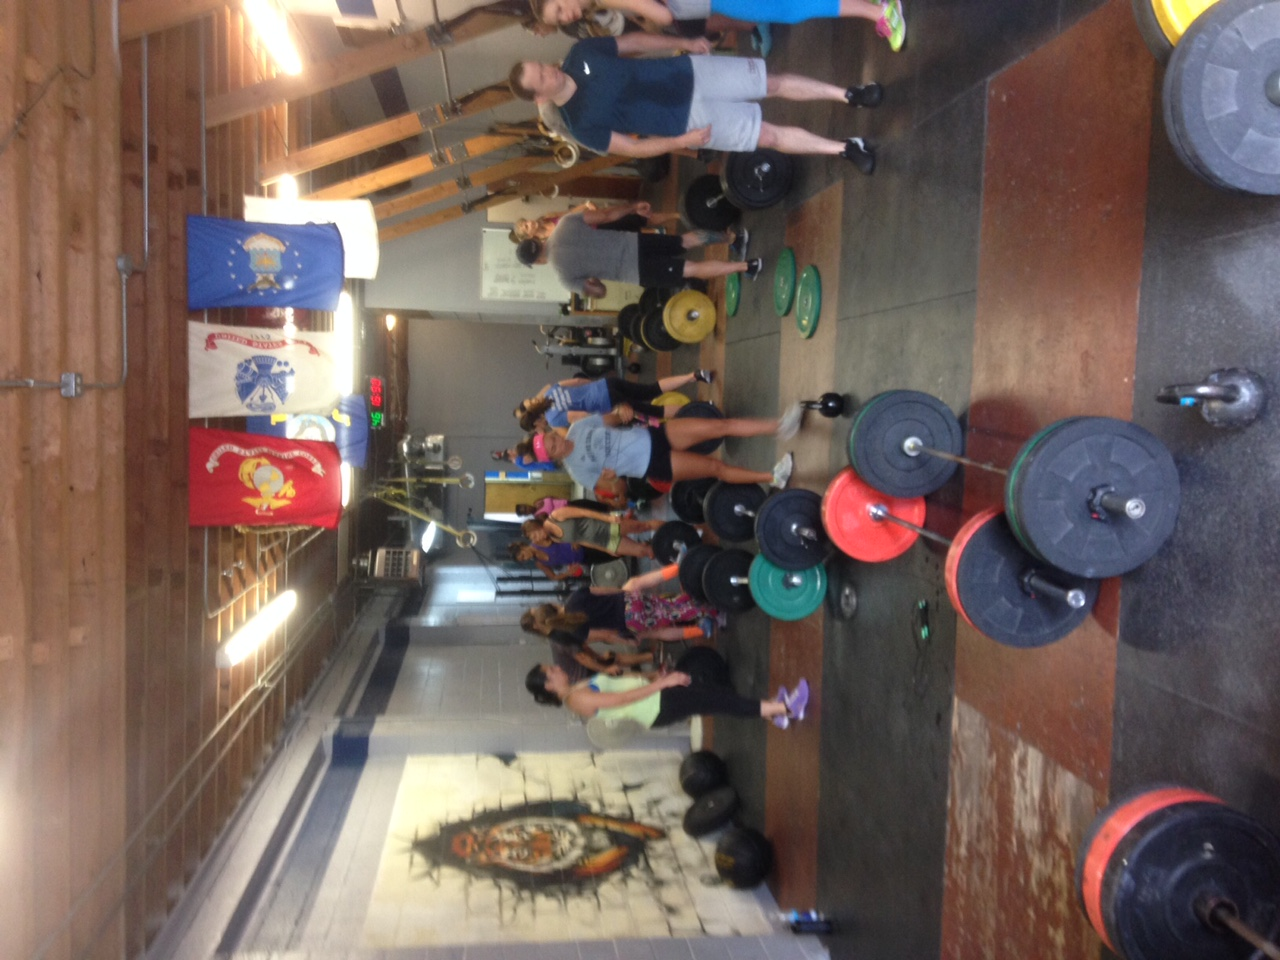 Saturday had barbells and people everywhere, it was such a bad a$$ site to see.